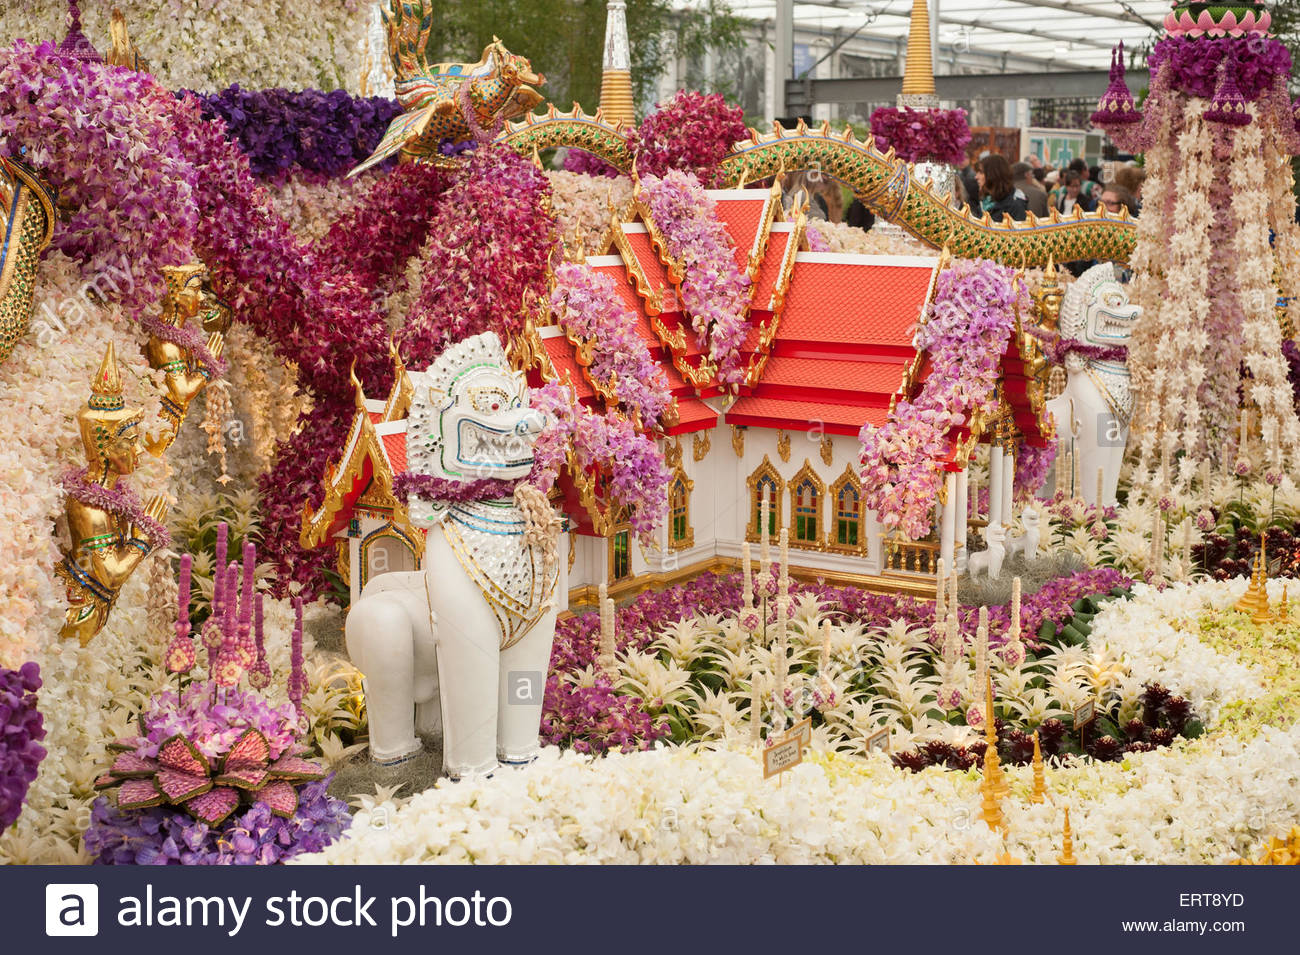 Rhs chelsea flower show 2015 display of the nong nooch tropical stock photo royalty free image - Royal flower show ...